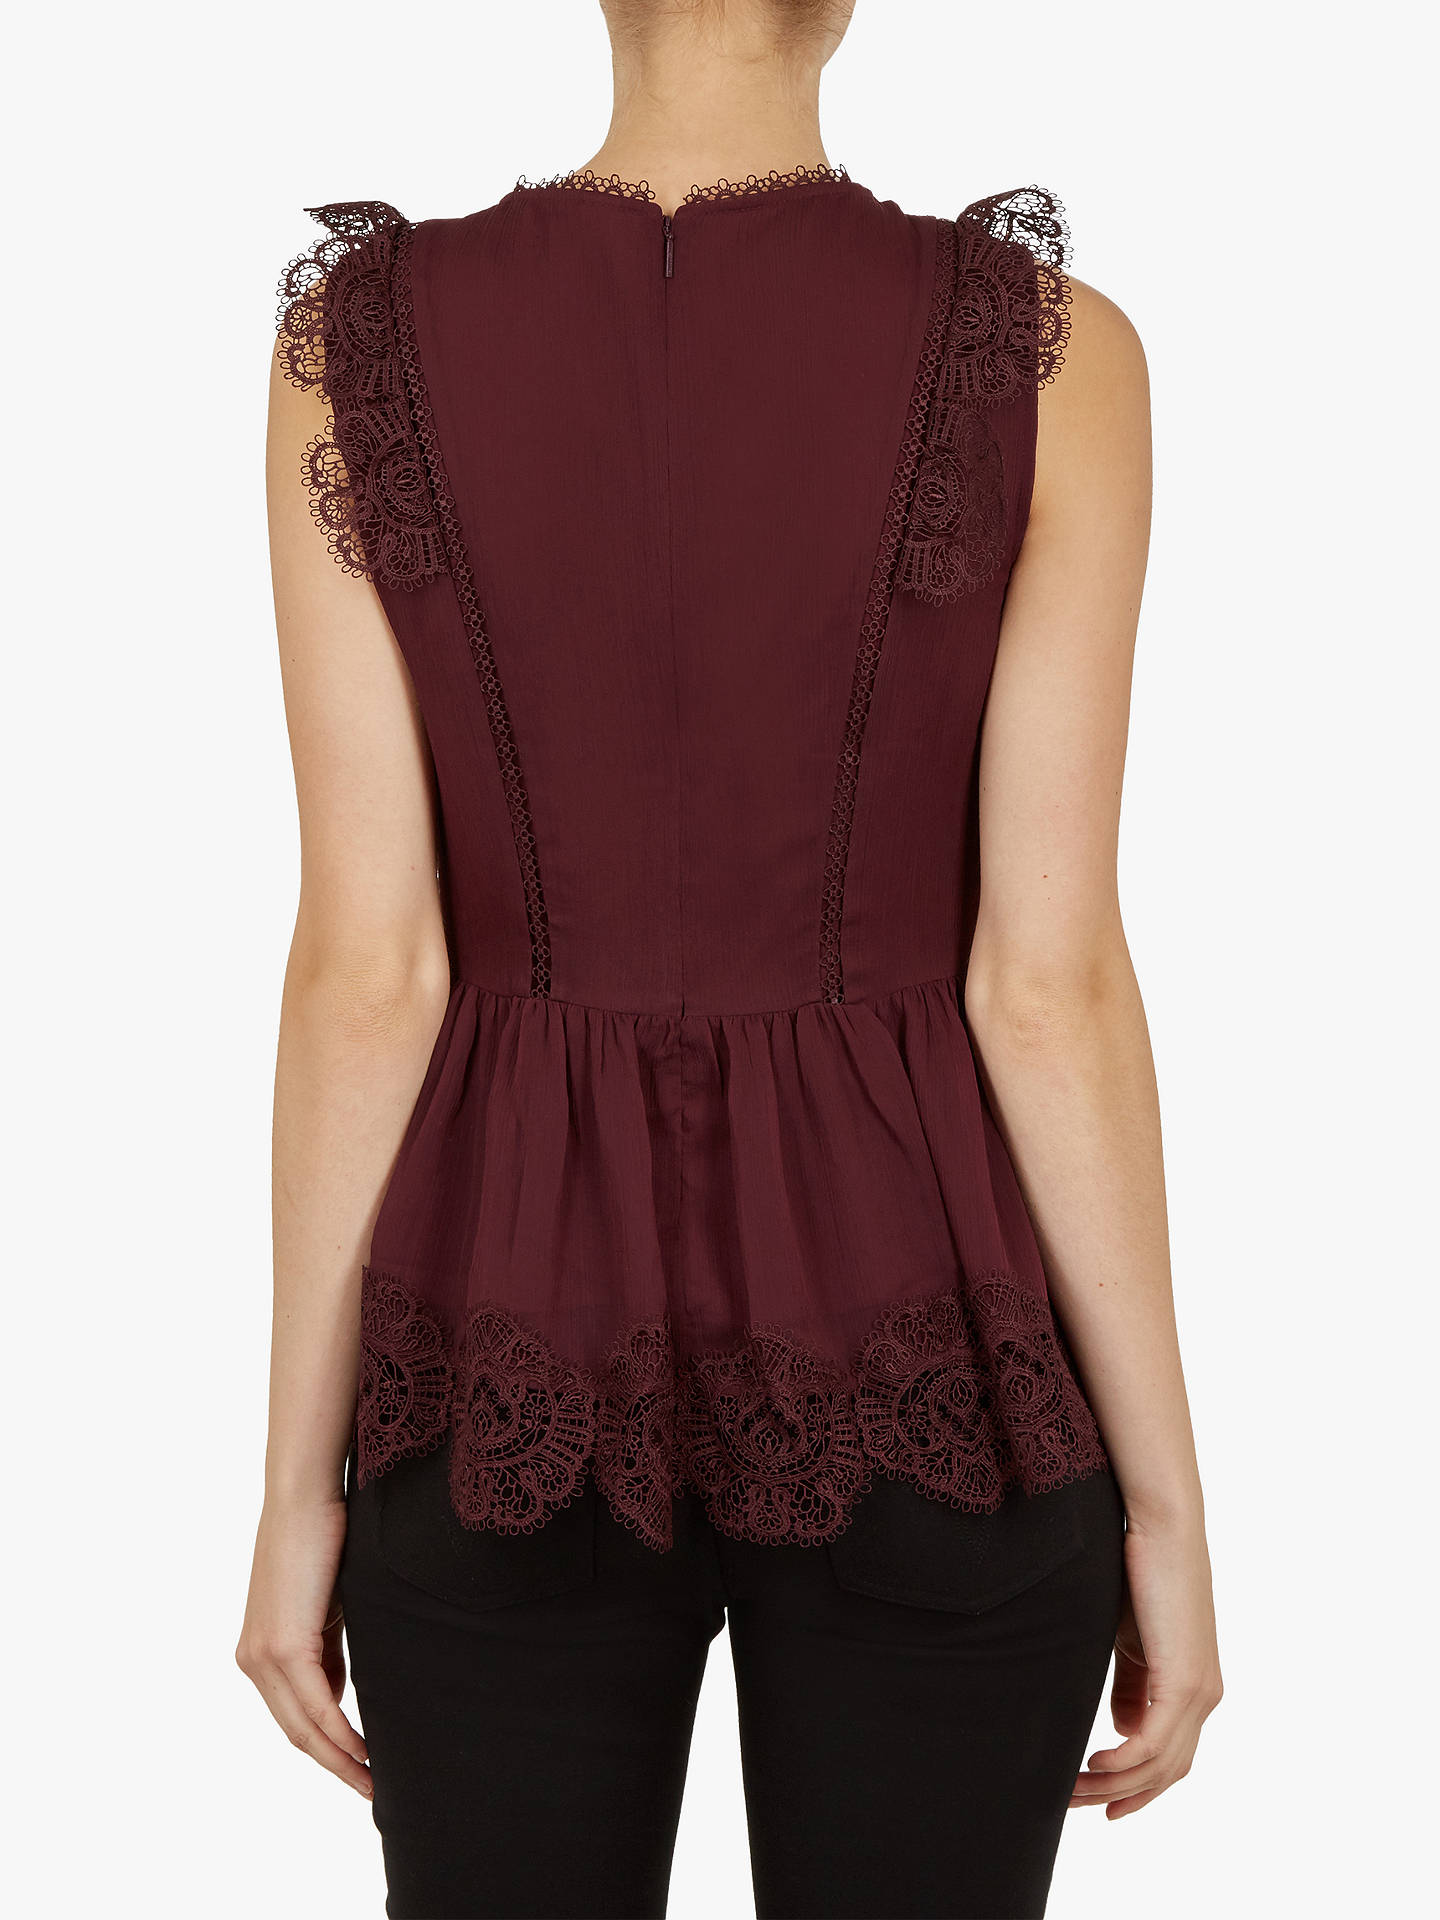 BuyTed Baker Omarri Mixed Lace Peplum Sleeve Top, Maroon, 1 Online at johnlewis.com